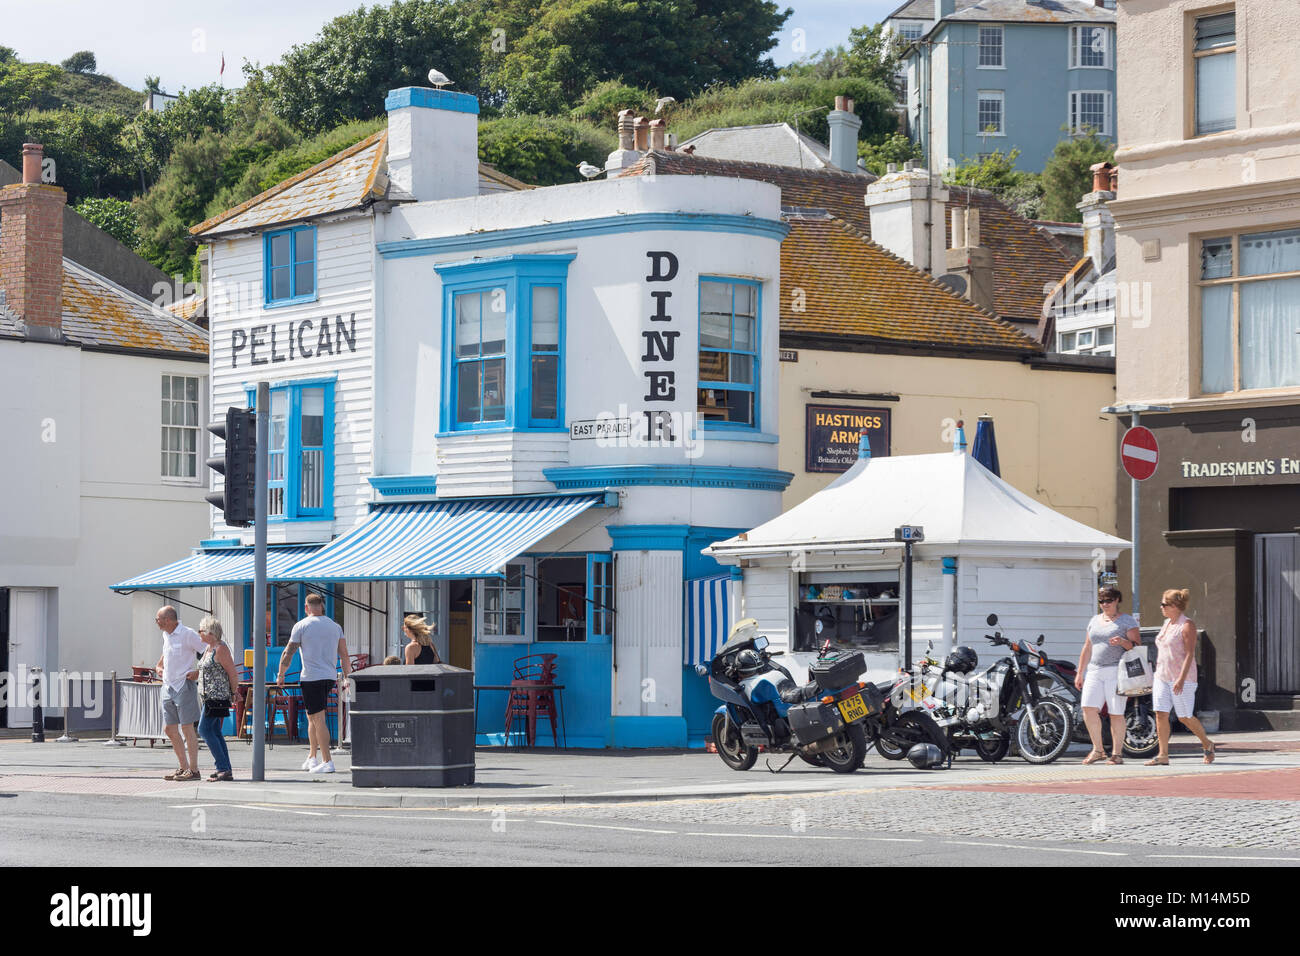 The Pelican Diner, Hastings Old Town, East Parade, Street, Hastings, East Sussex, England, United Kingdom - Stock Image